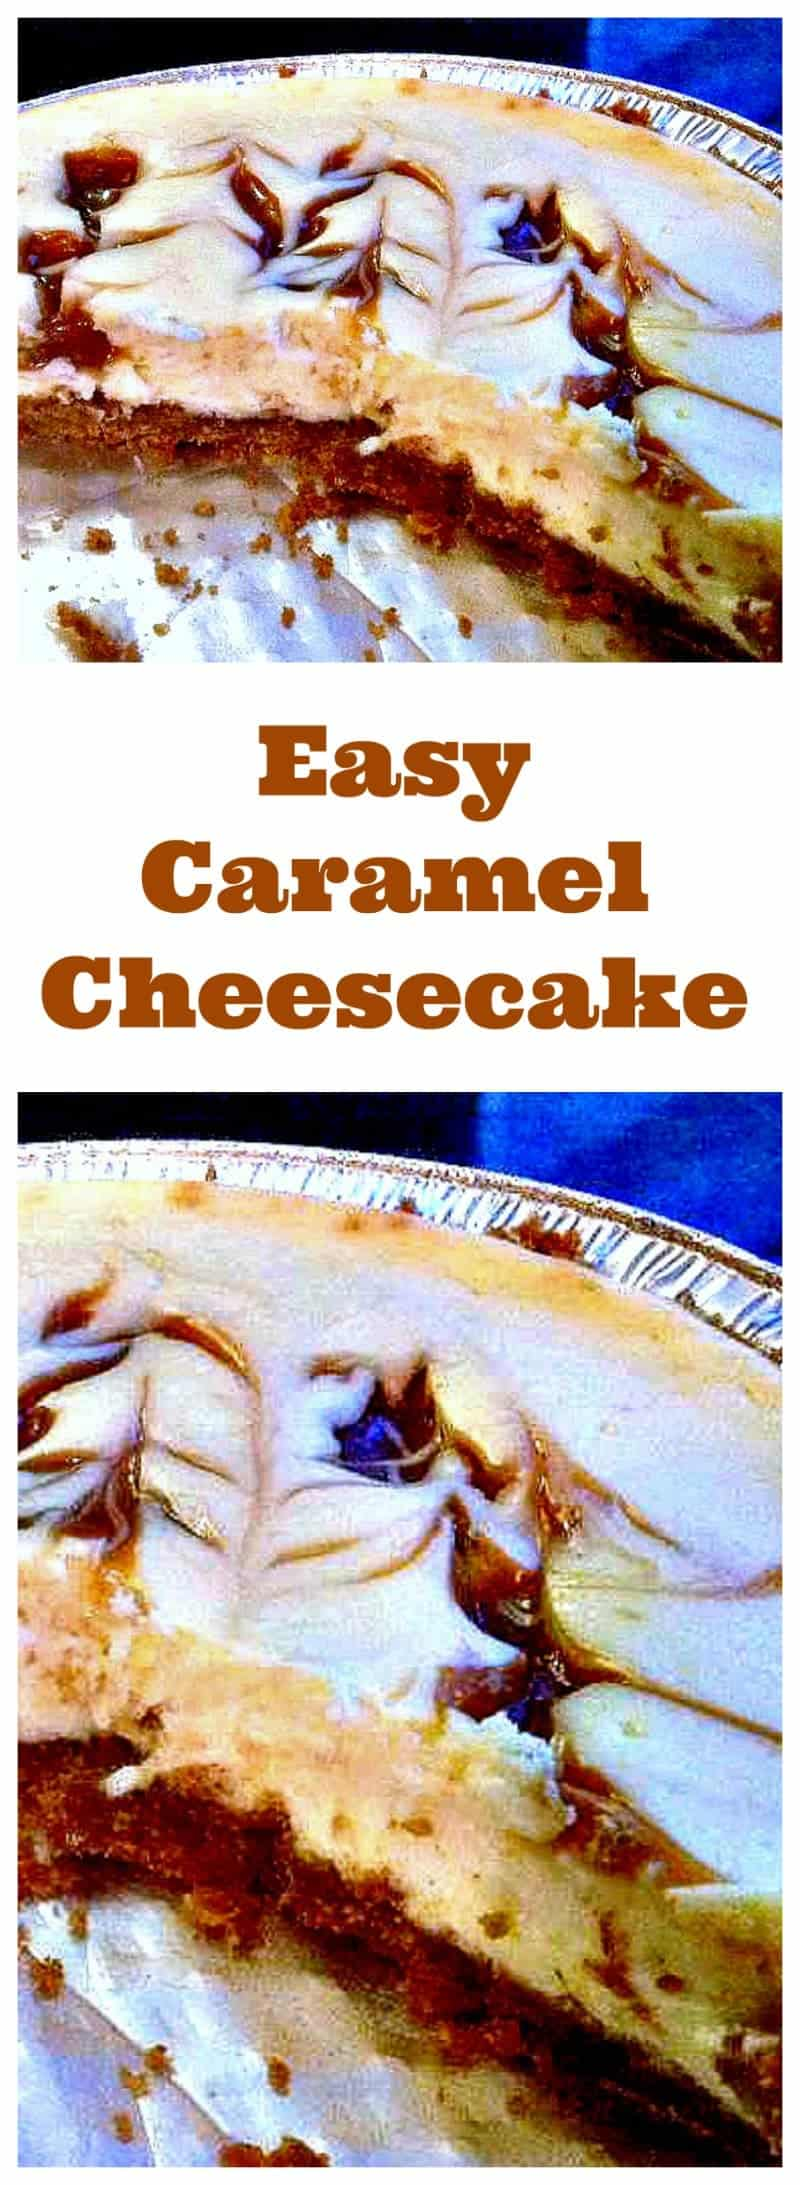 Caramel Cheesecake.Oh yummy! A wonderful baked Vanilla Cheesecake with ripples of caramel though out. Easy recipe and always a hit!